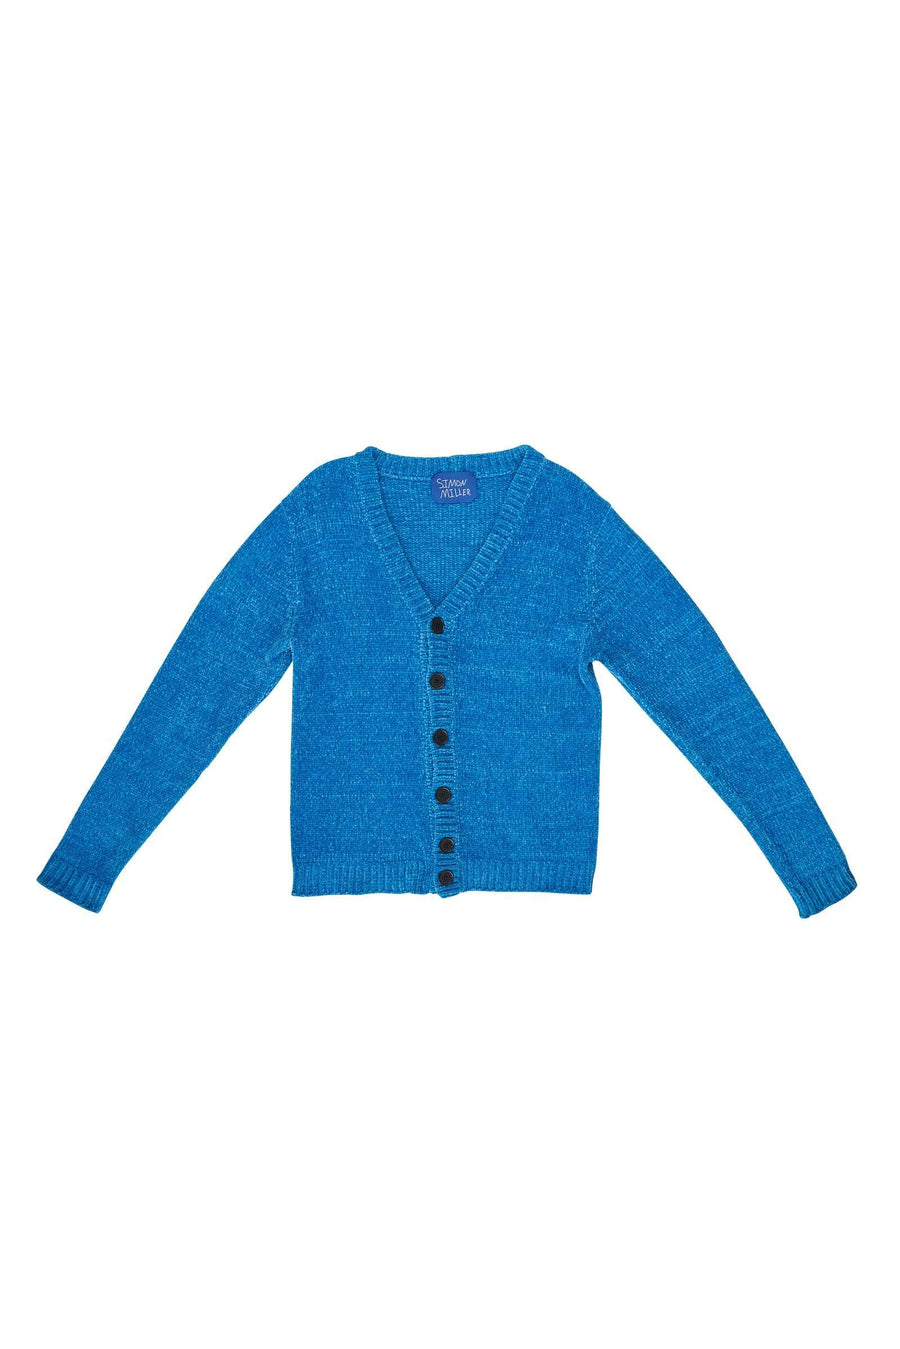 M730 Orr Cardigan in Wave